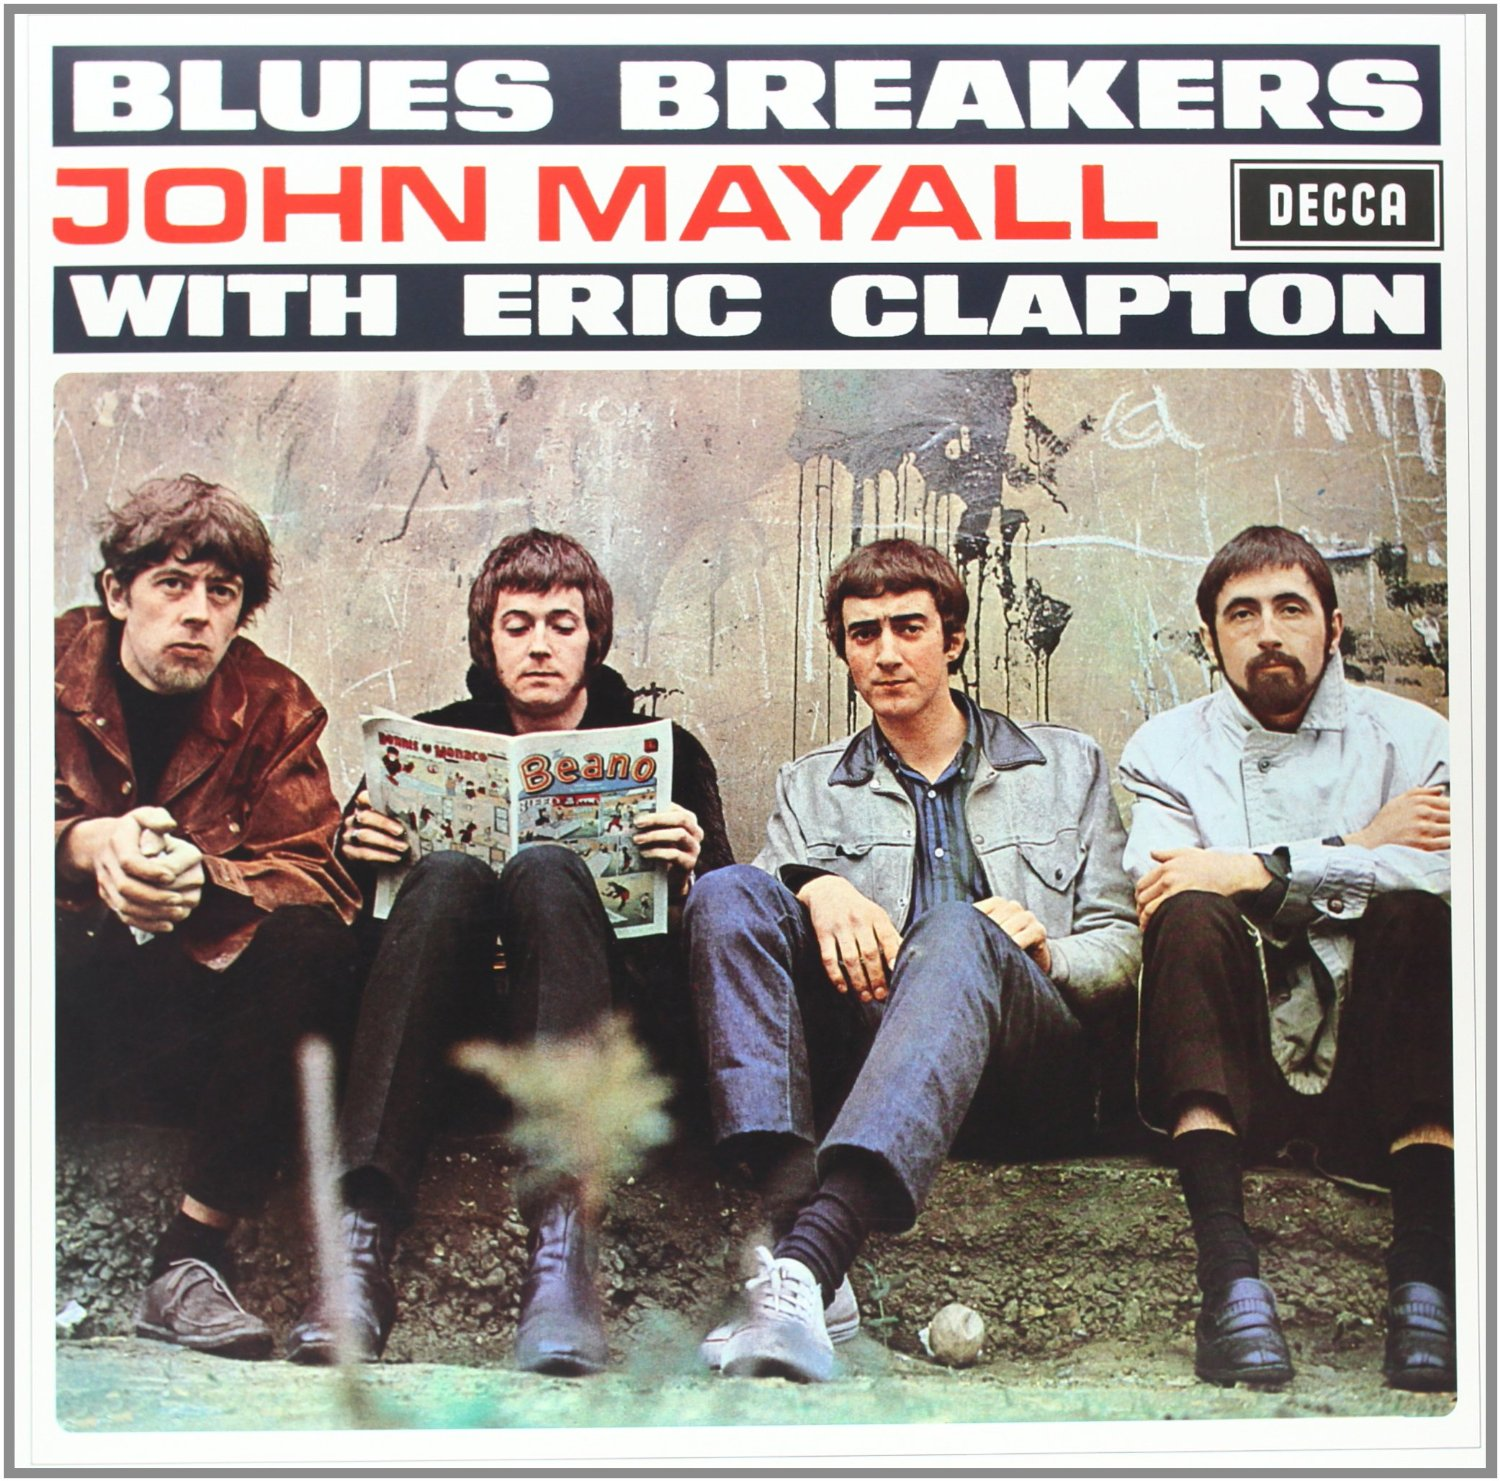 Disco Eterno: John Mayall & The Bluesbreakers – Blues Breakers with Eric Clapton